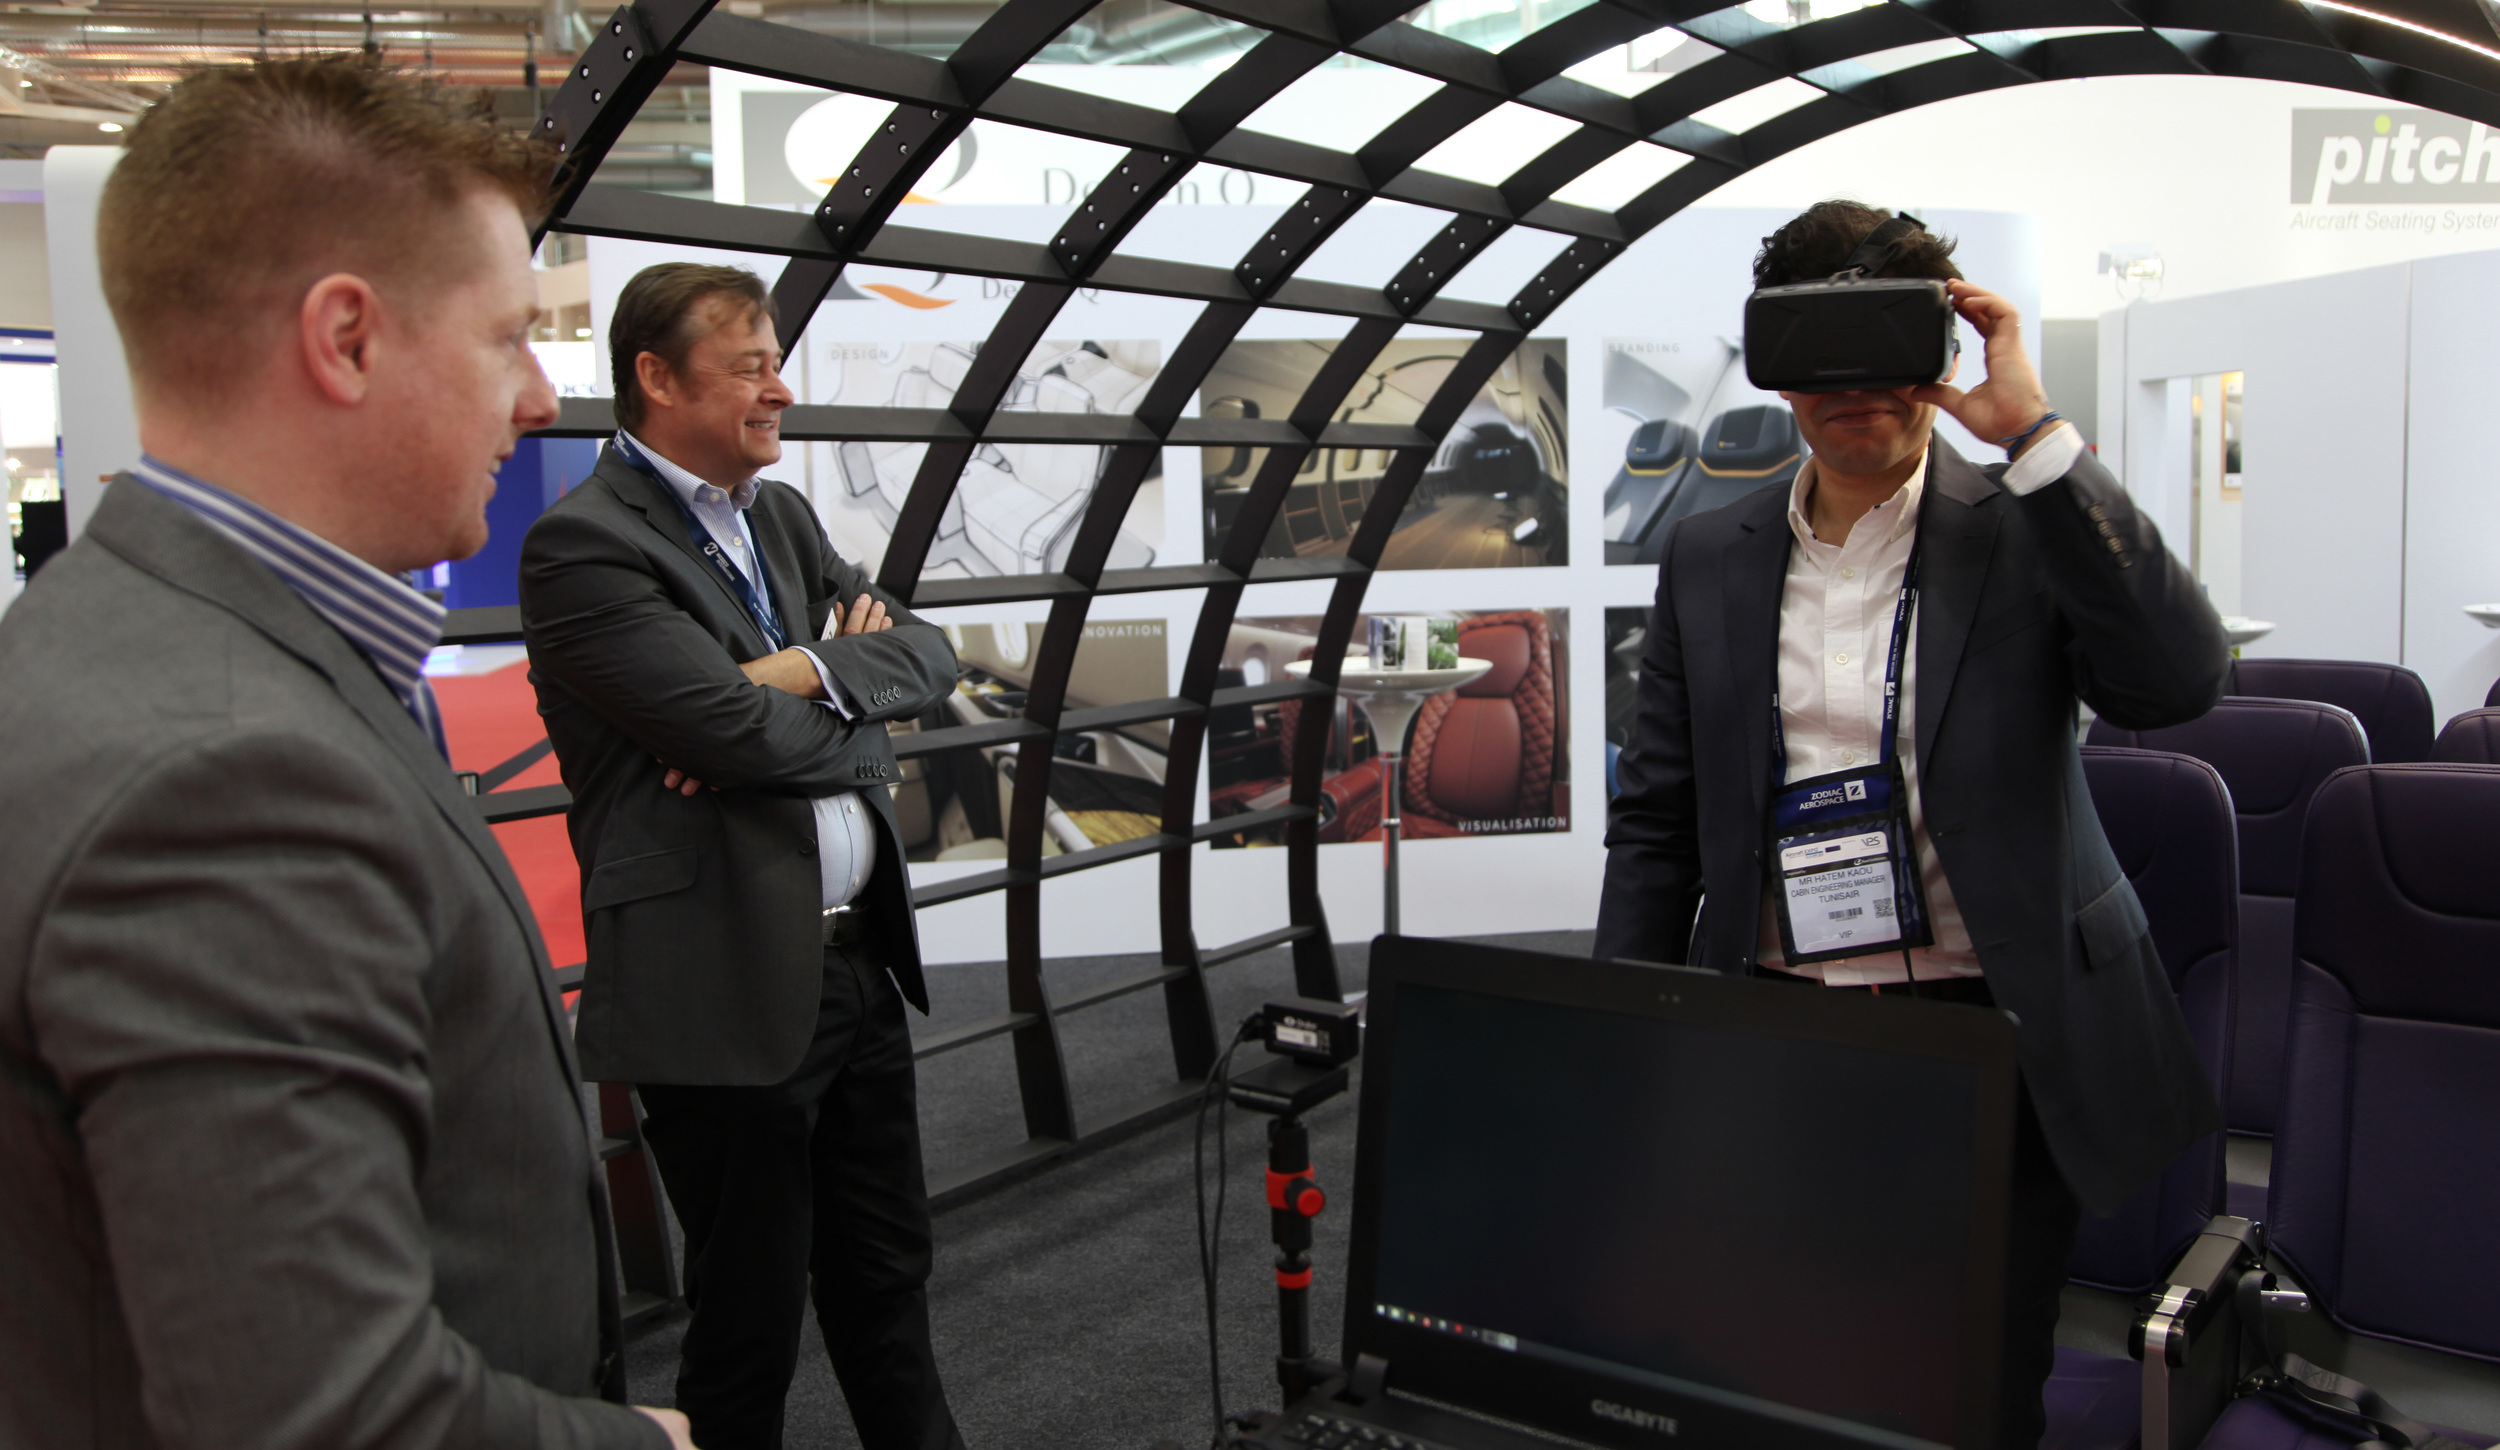 Oculus Rift on display at Aircraft Interiors Expo 2015